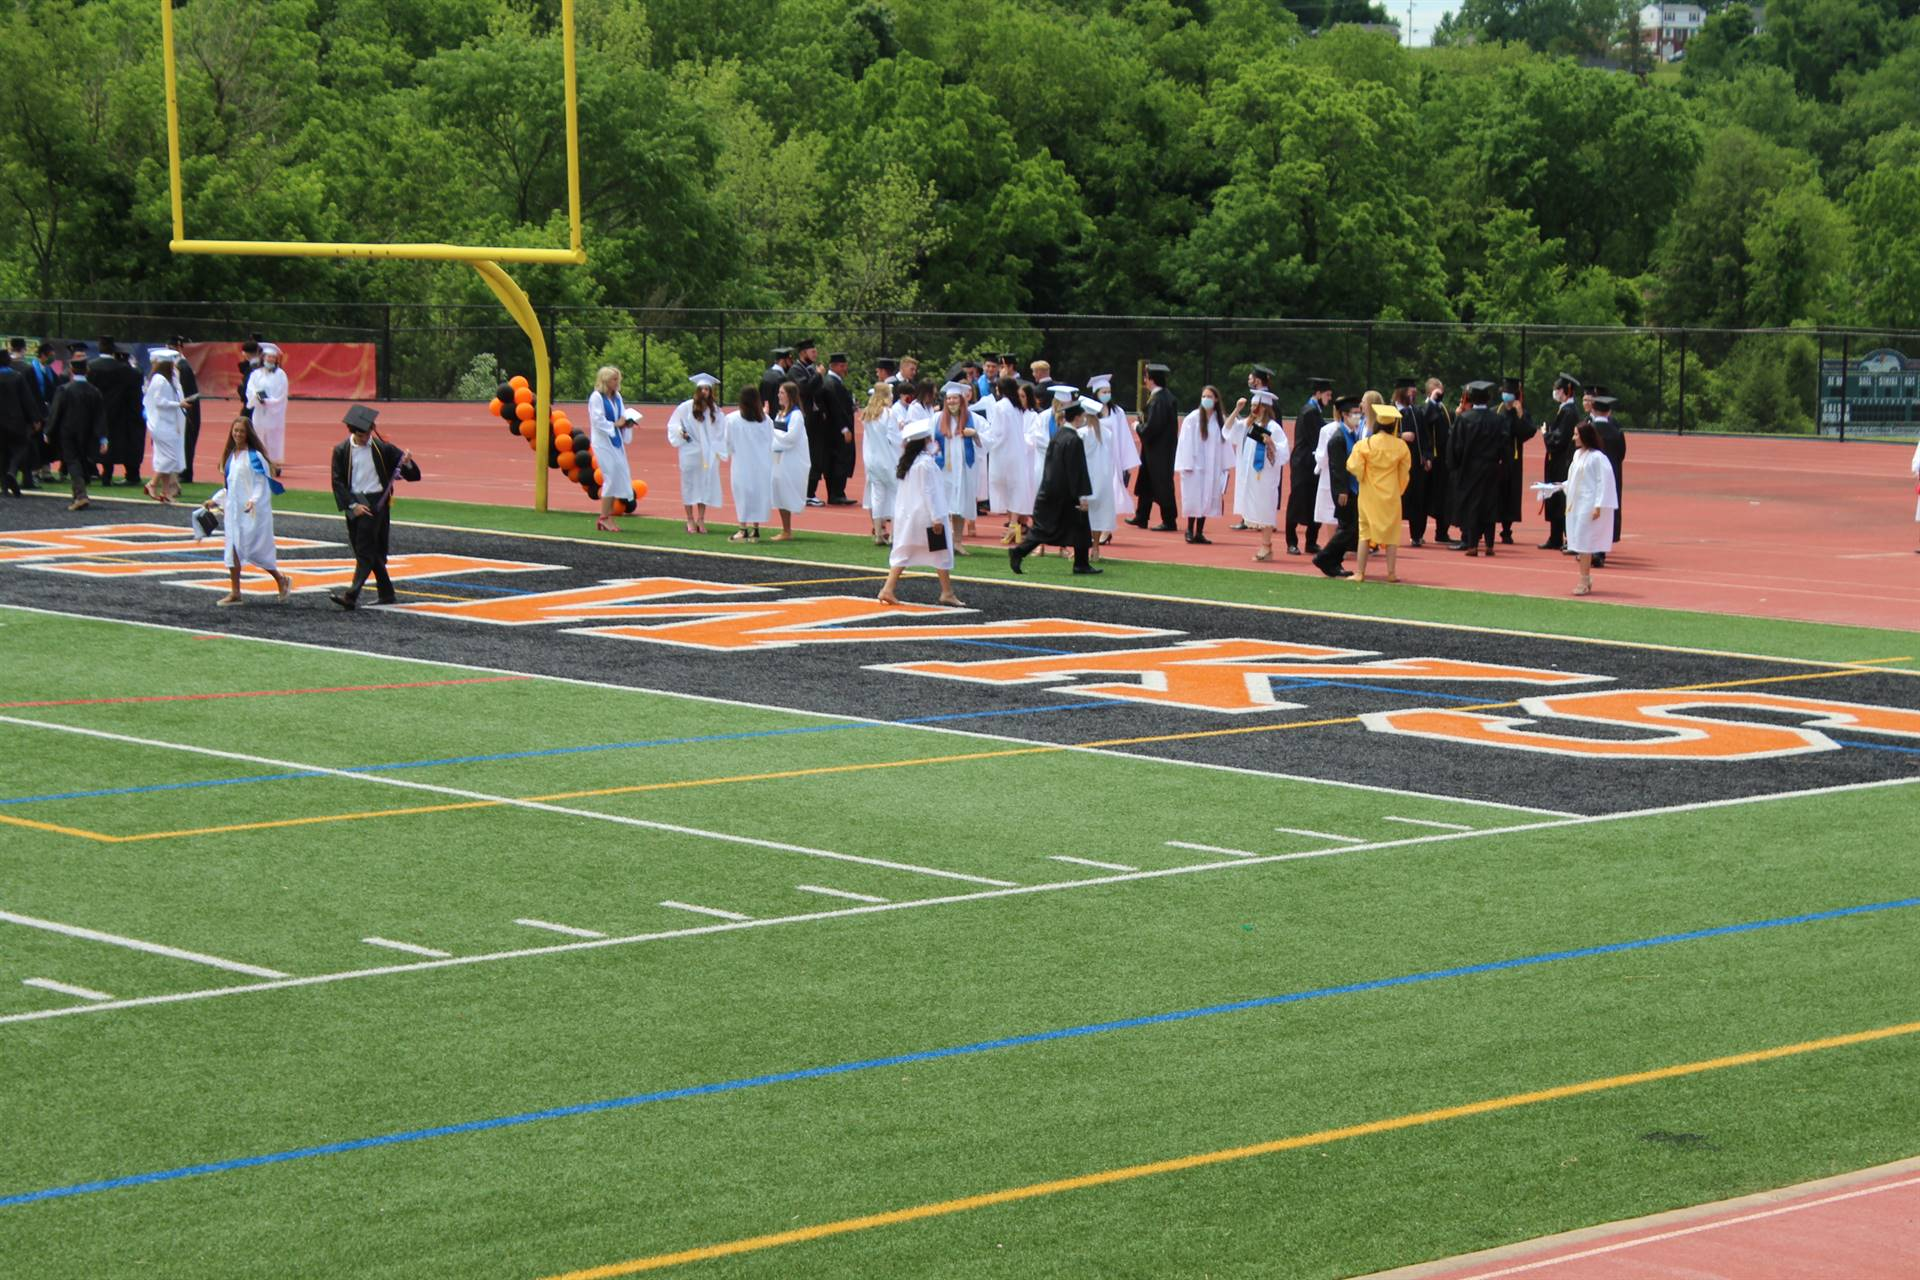 2020 Graduates in the end zone